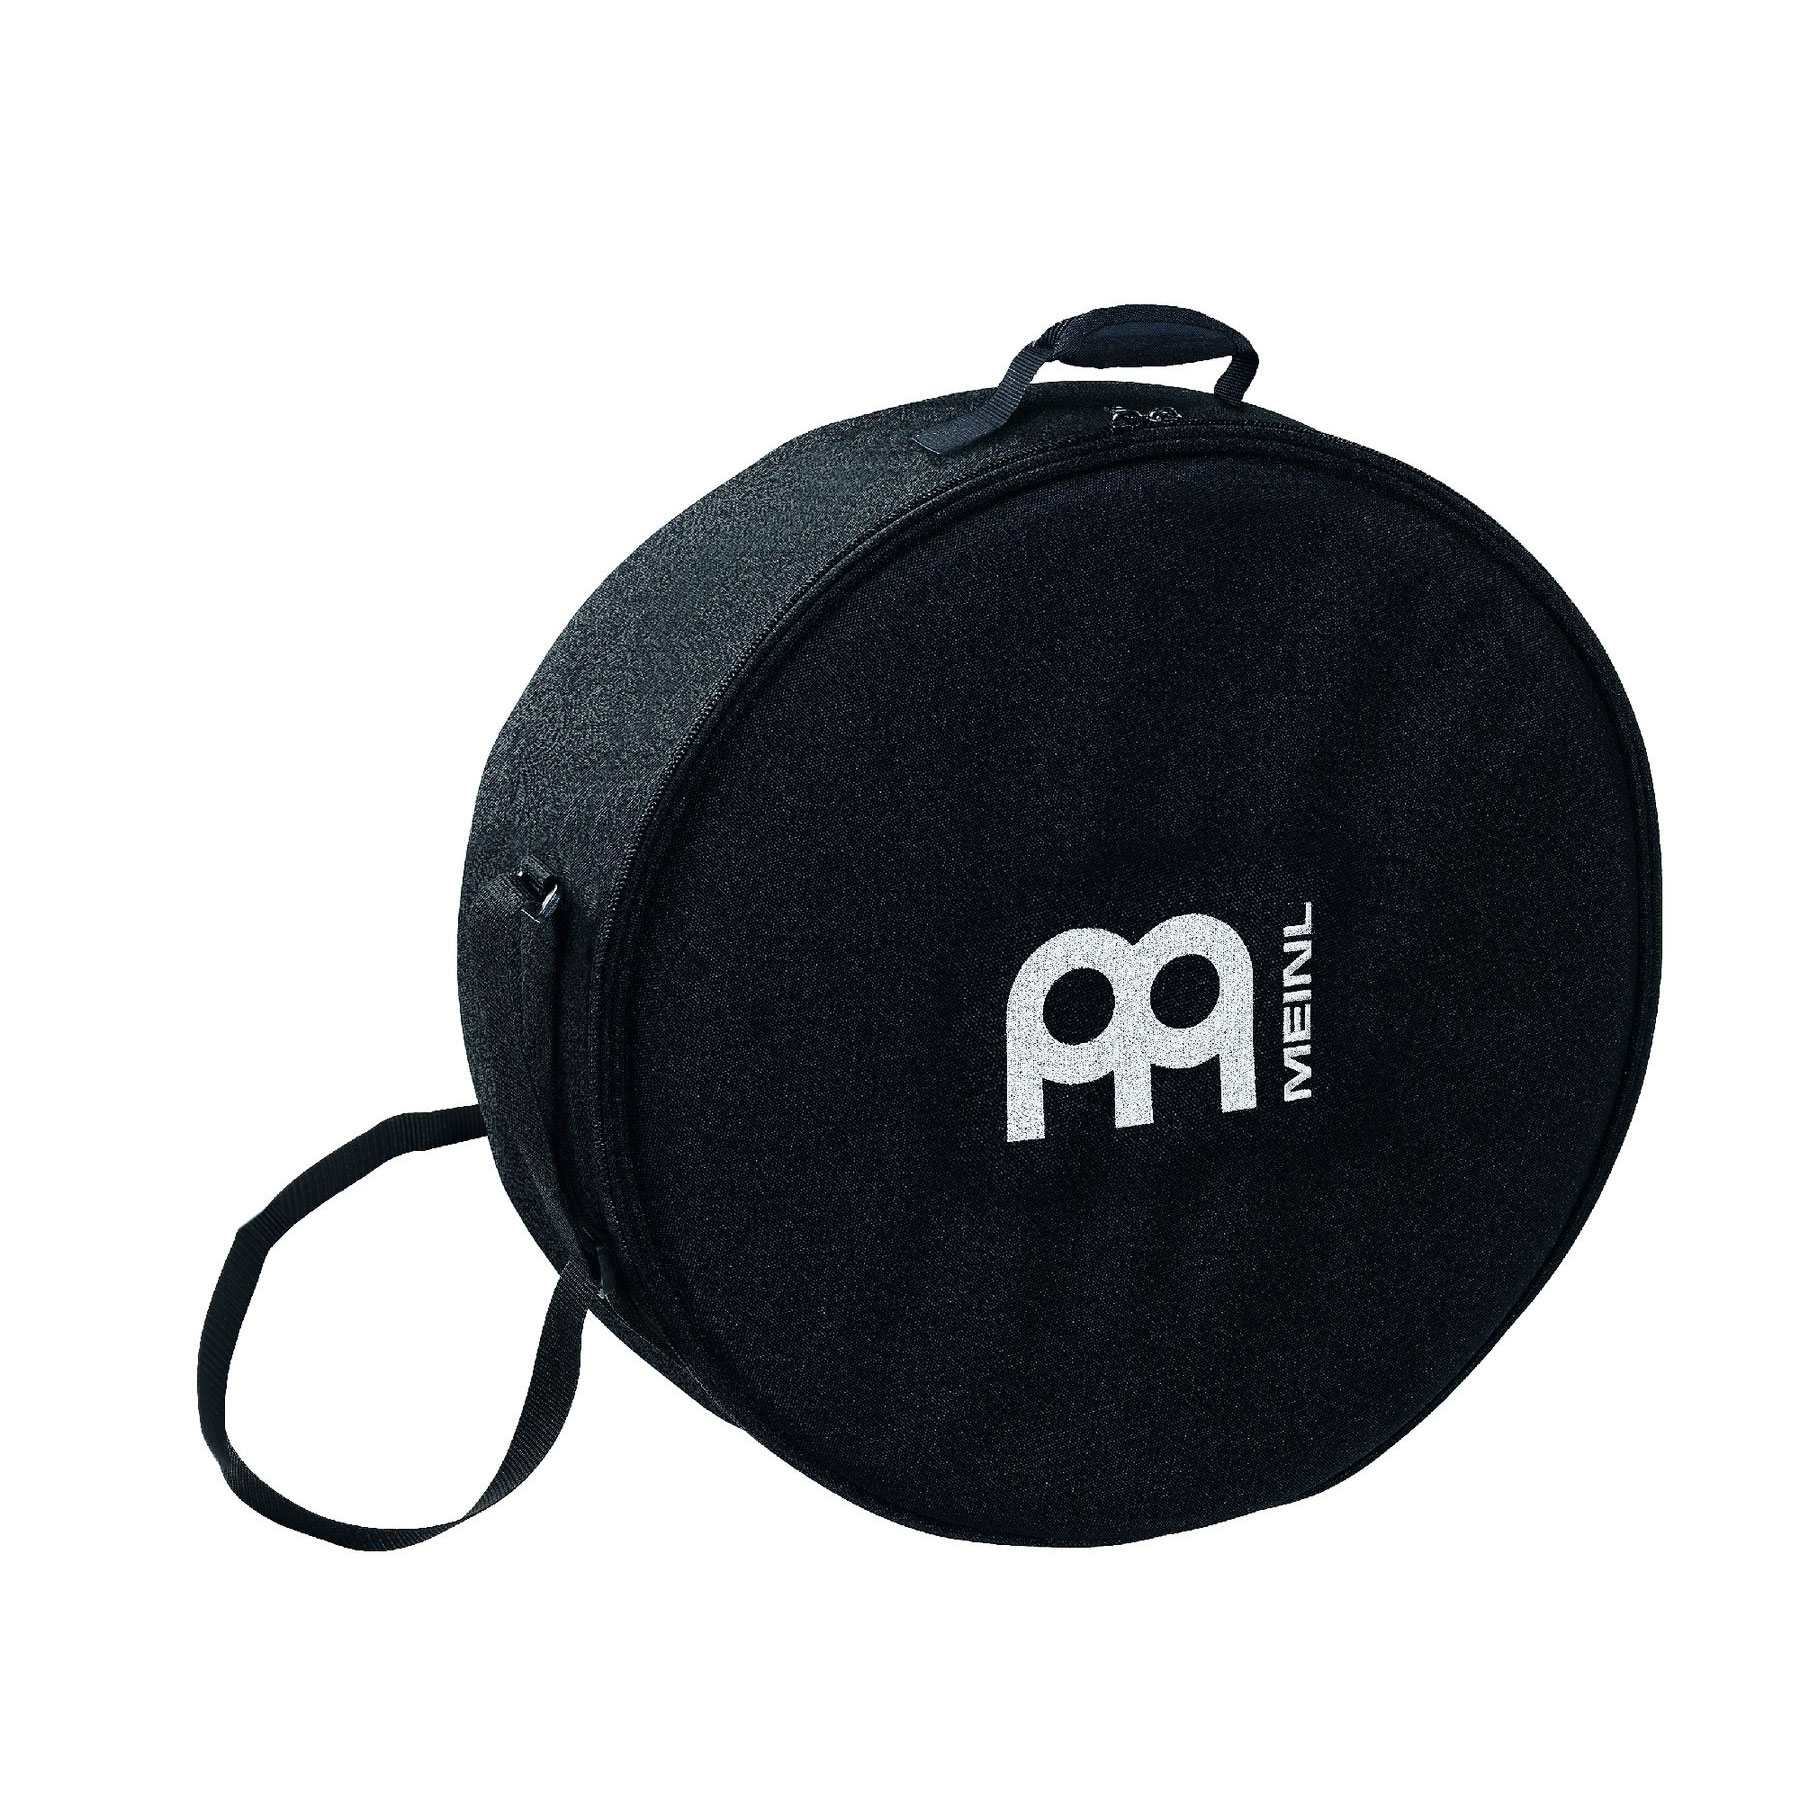 "Meinl 18"" (Diameter) Professional Bodhran Drum Bag"